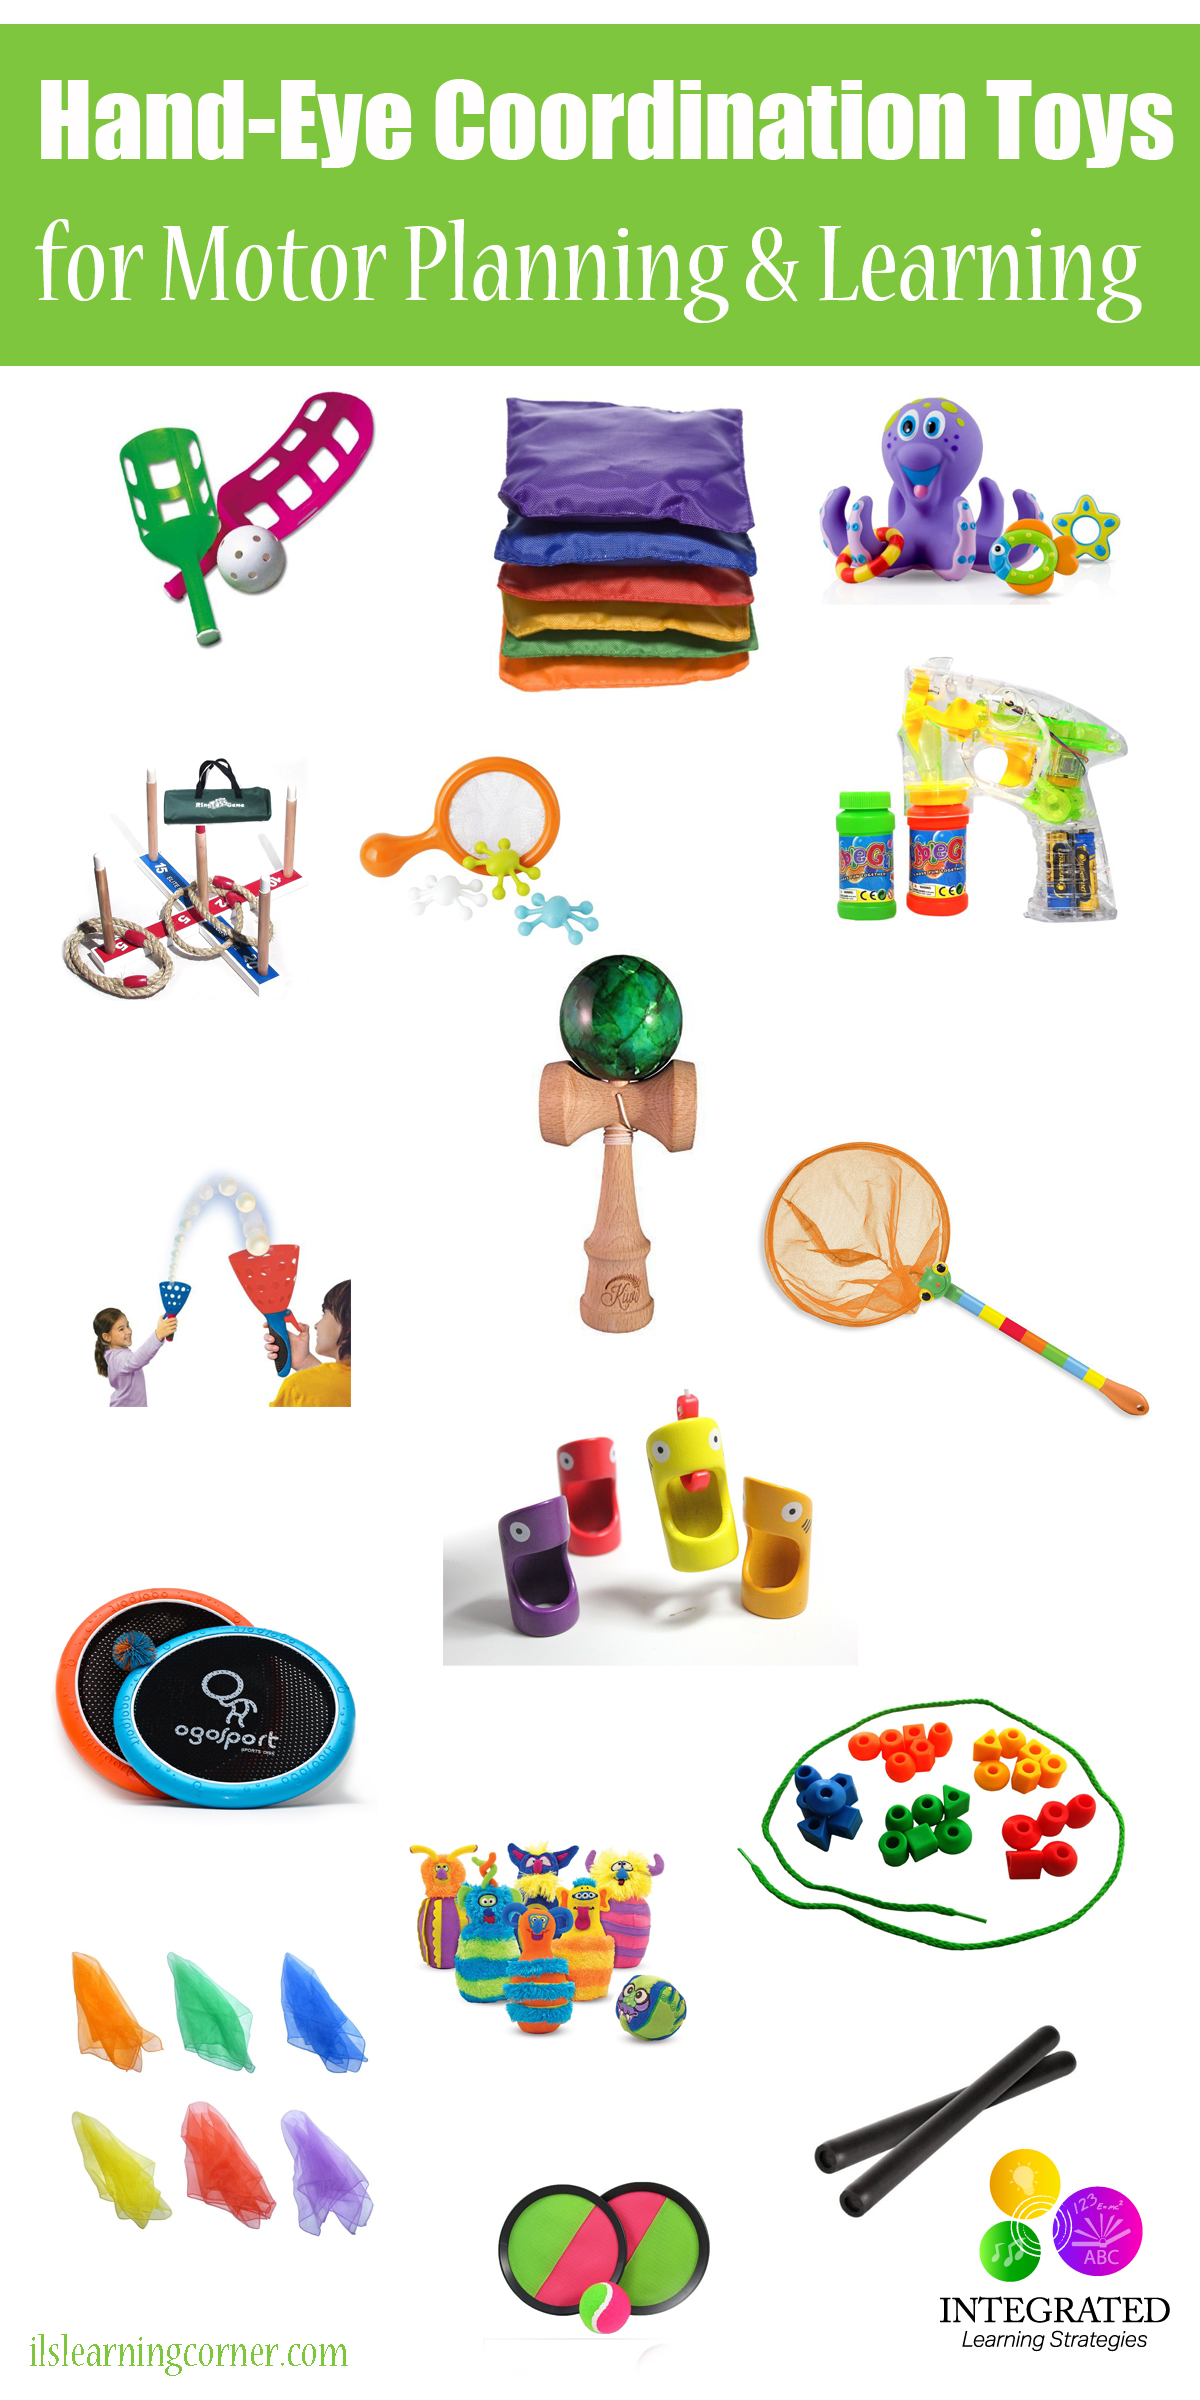 Hand-eye Coordination Toys For Better Motor Planning